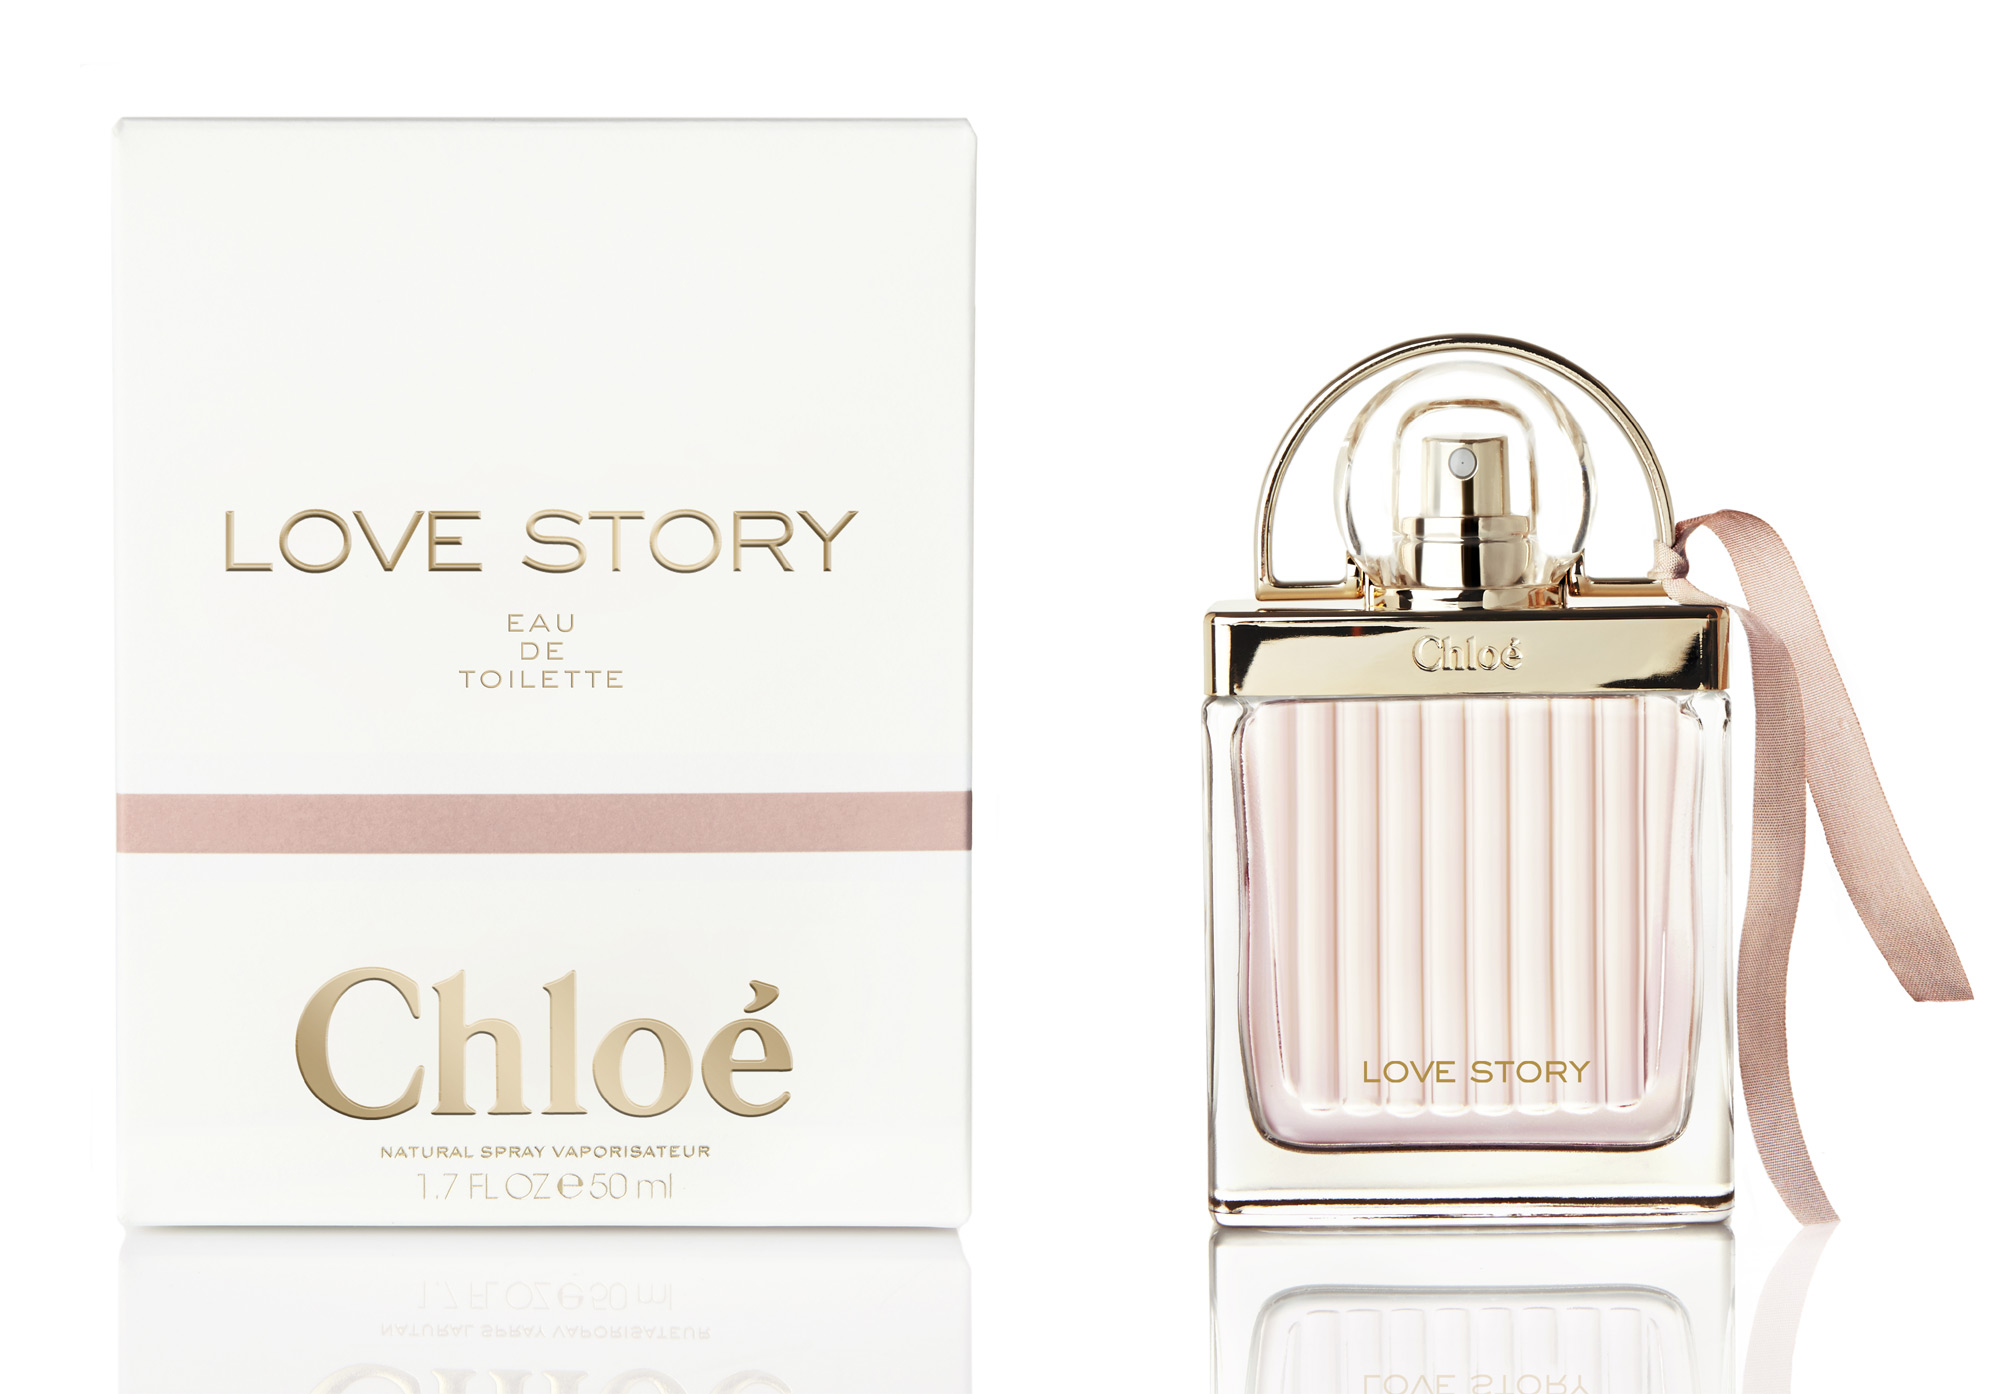 Chloe Eau Love Story Eau De Toilette Chloé For Women